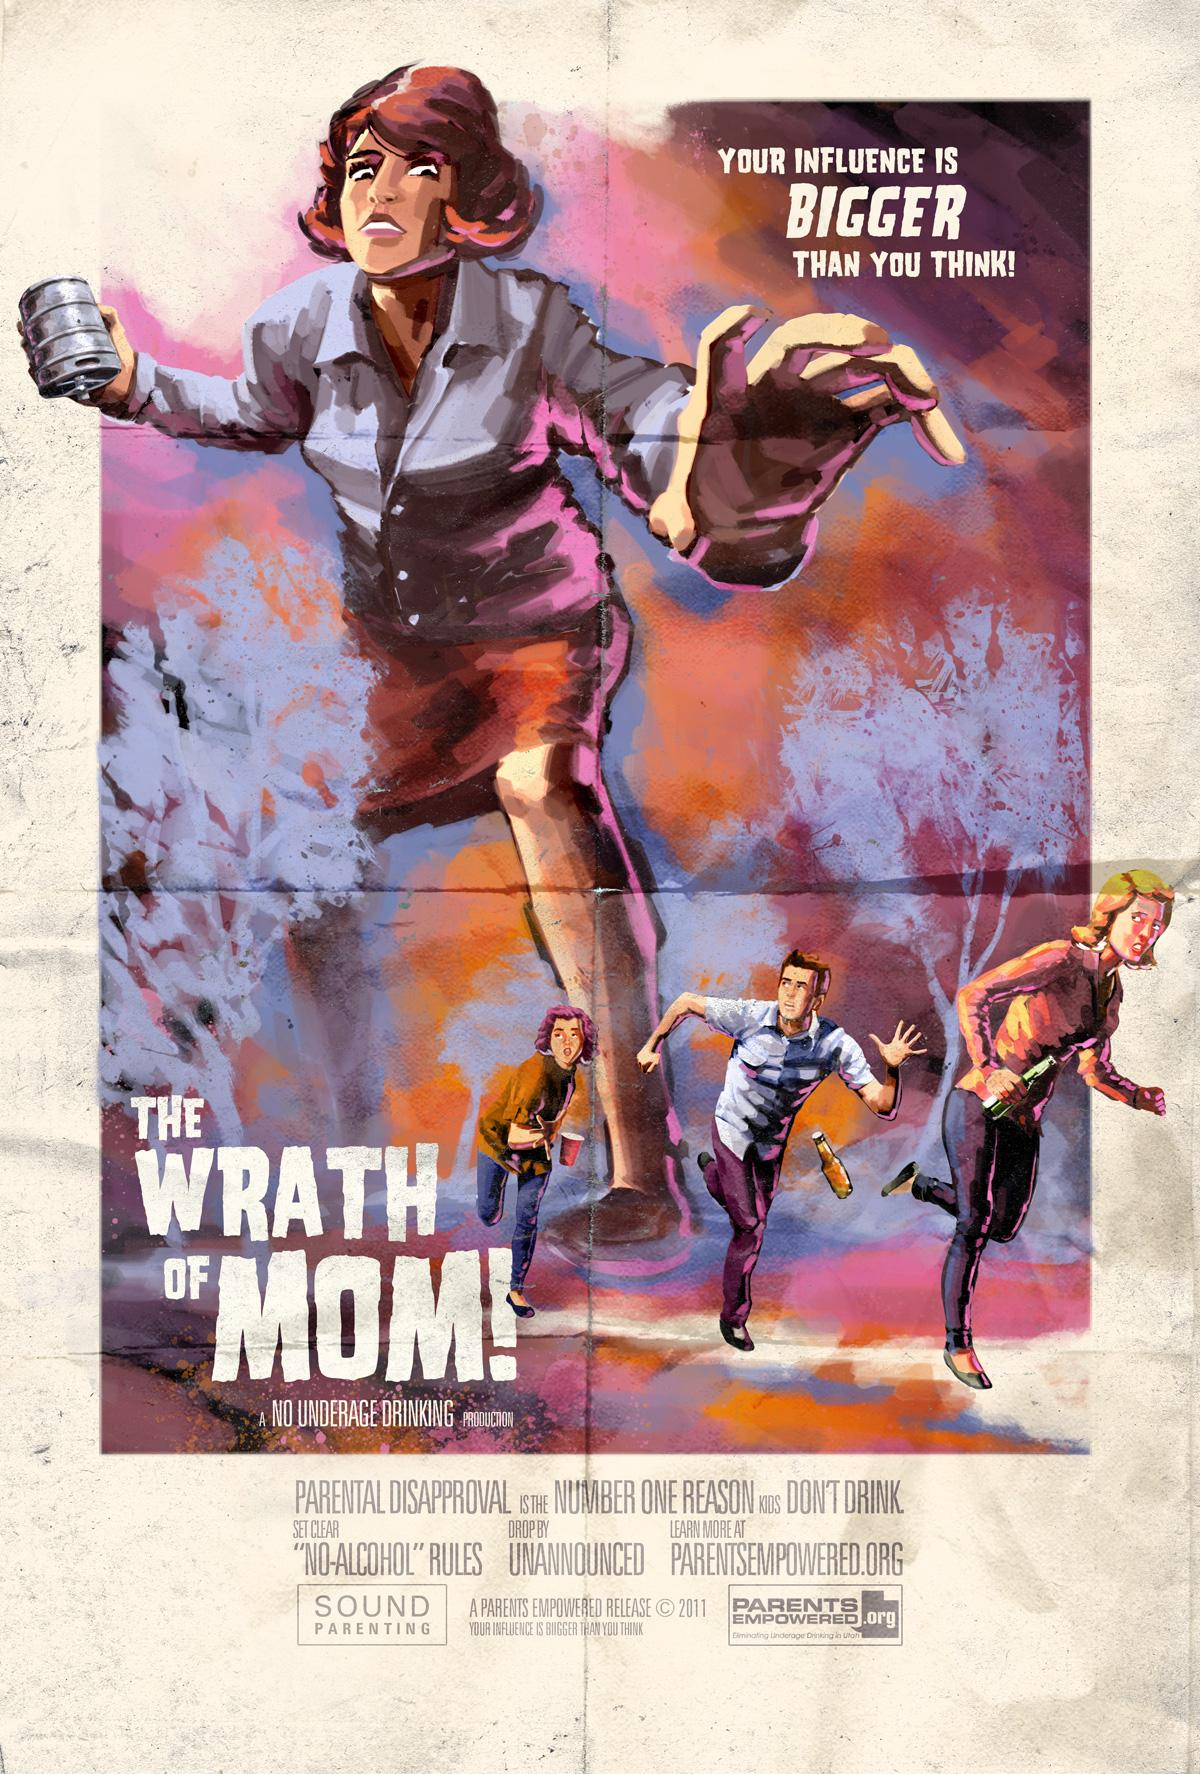 Parents Empowered Outdoor Ad -  Your Influence Is Bigger Than You Think, The Wrath of Mom